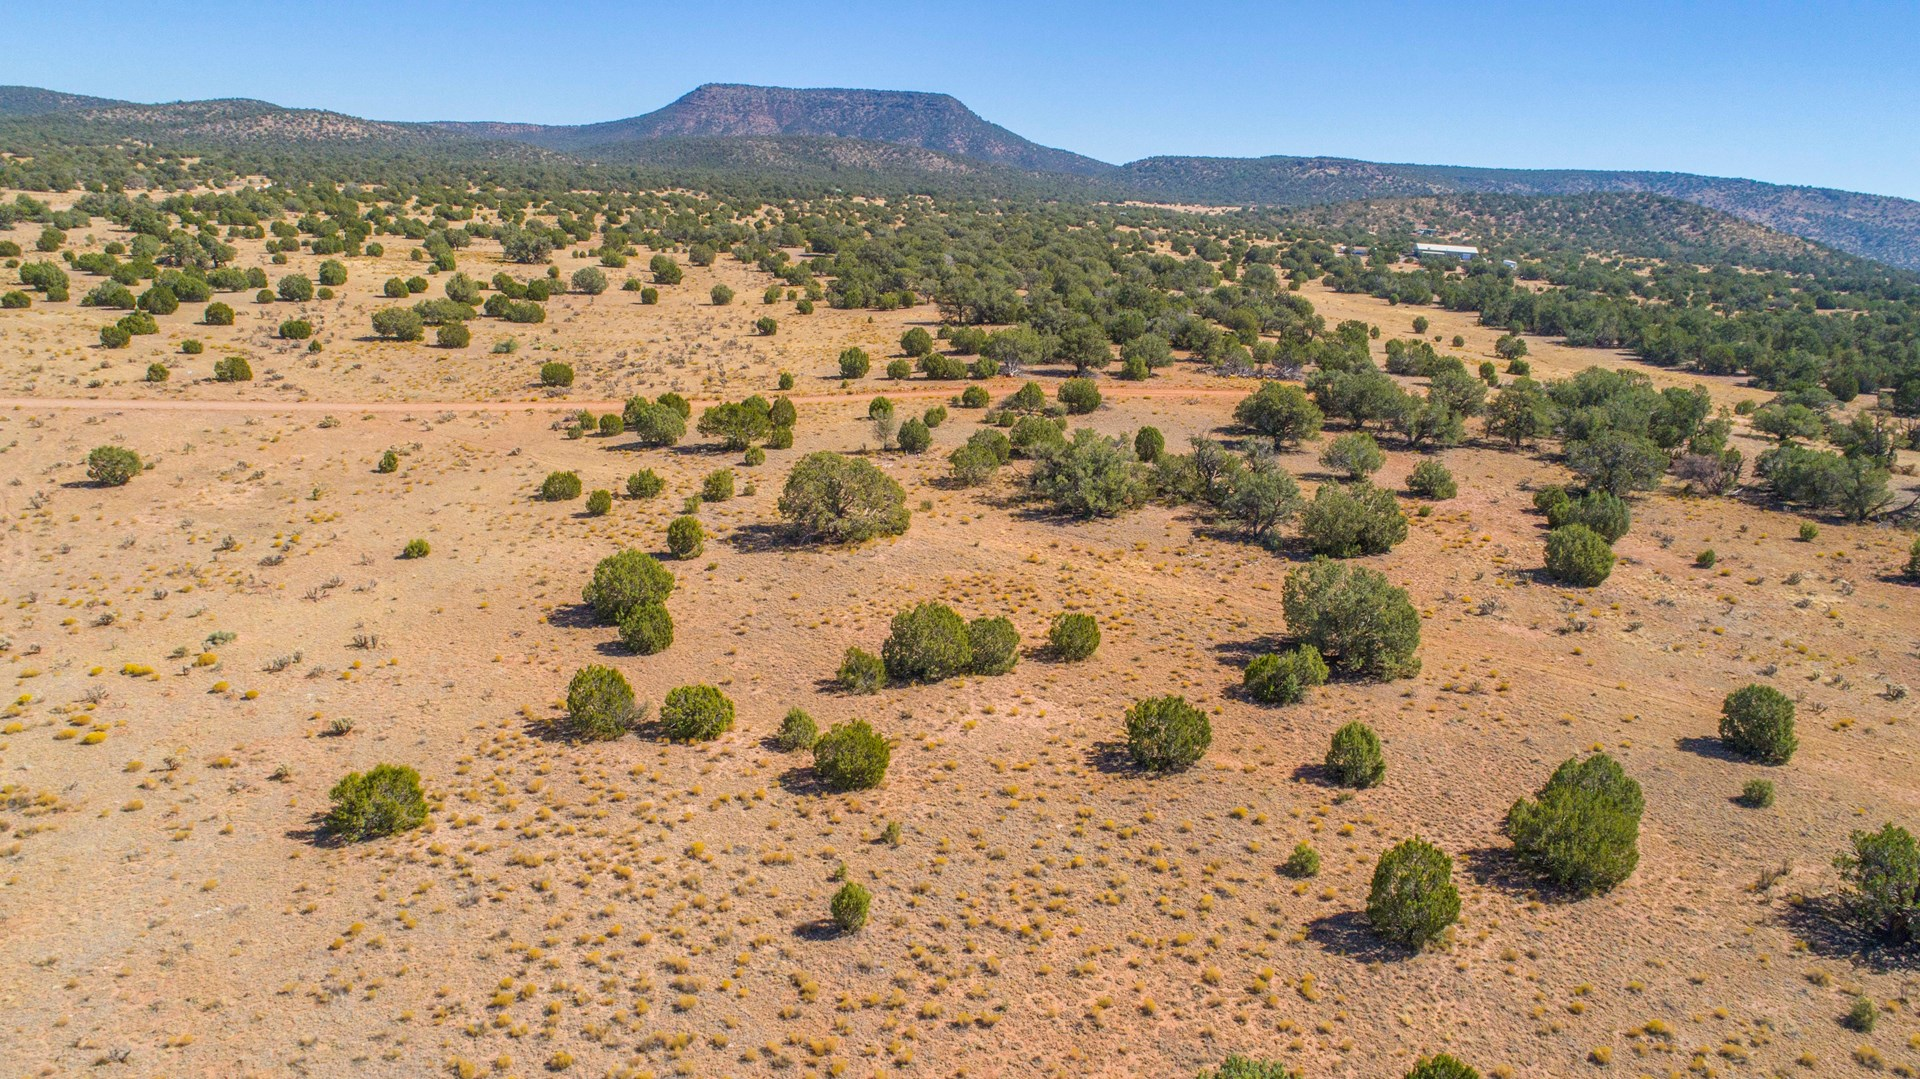 Vacant Land Borders Public Land For Sale in Seligman AZ